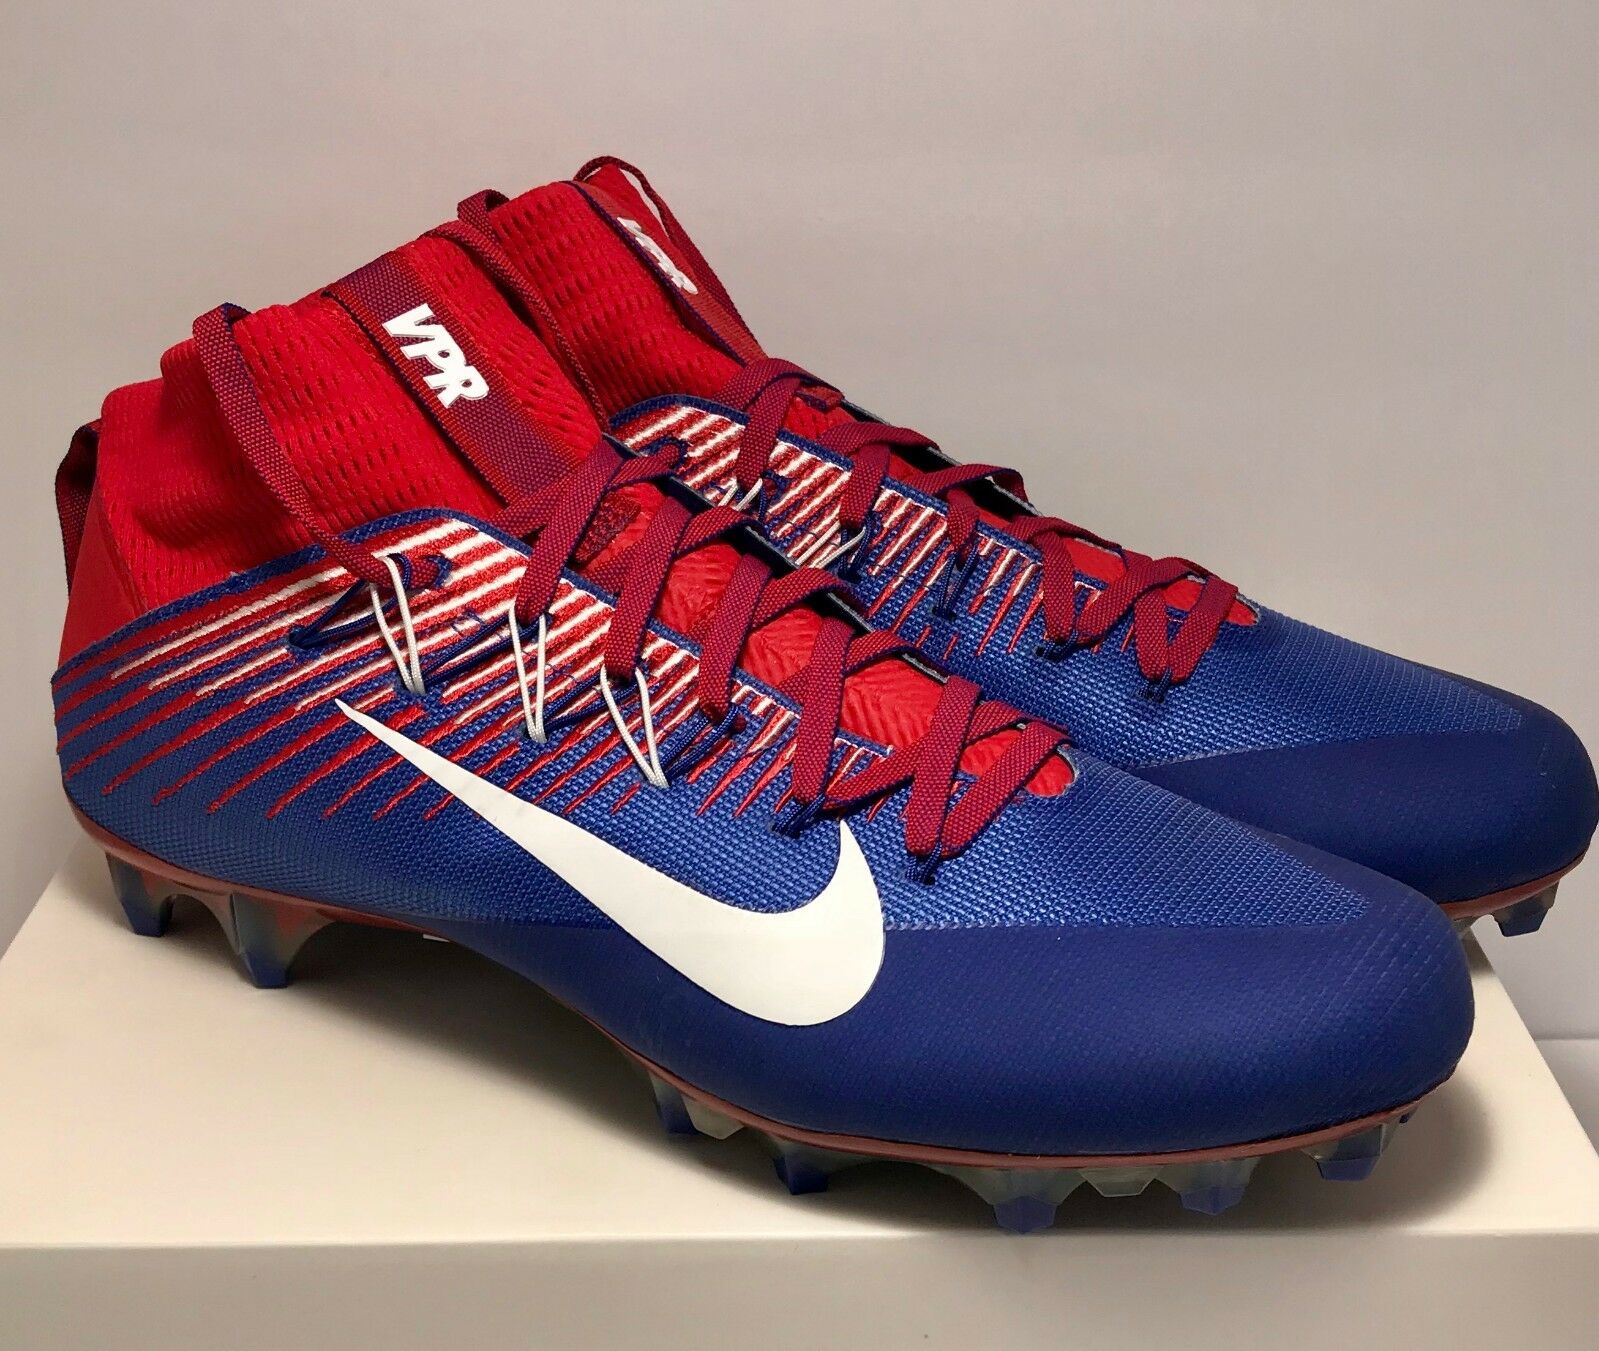 Nike Mens Size 13 Untouchable 2 Football Cleats bluee Red USA Rare New  200